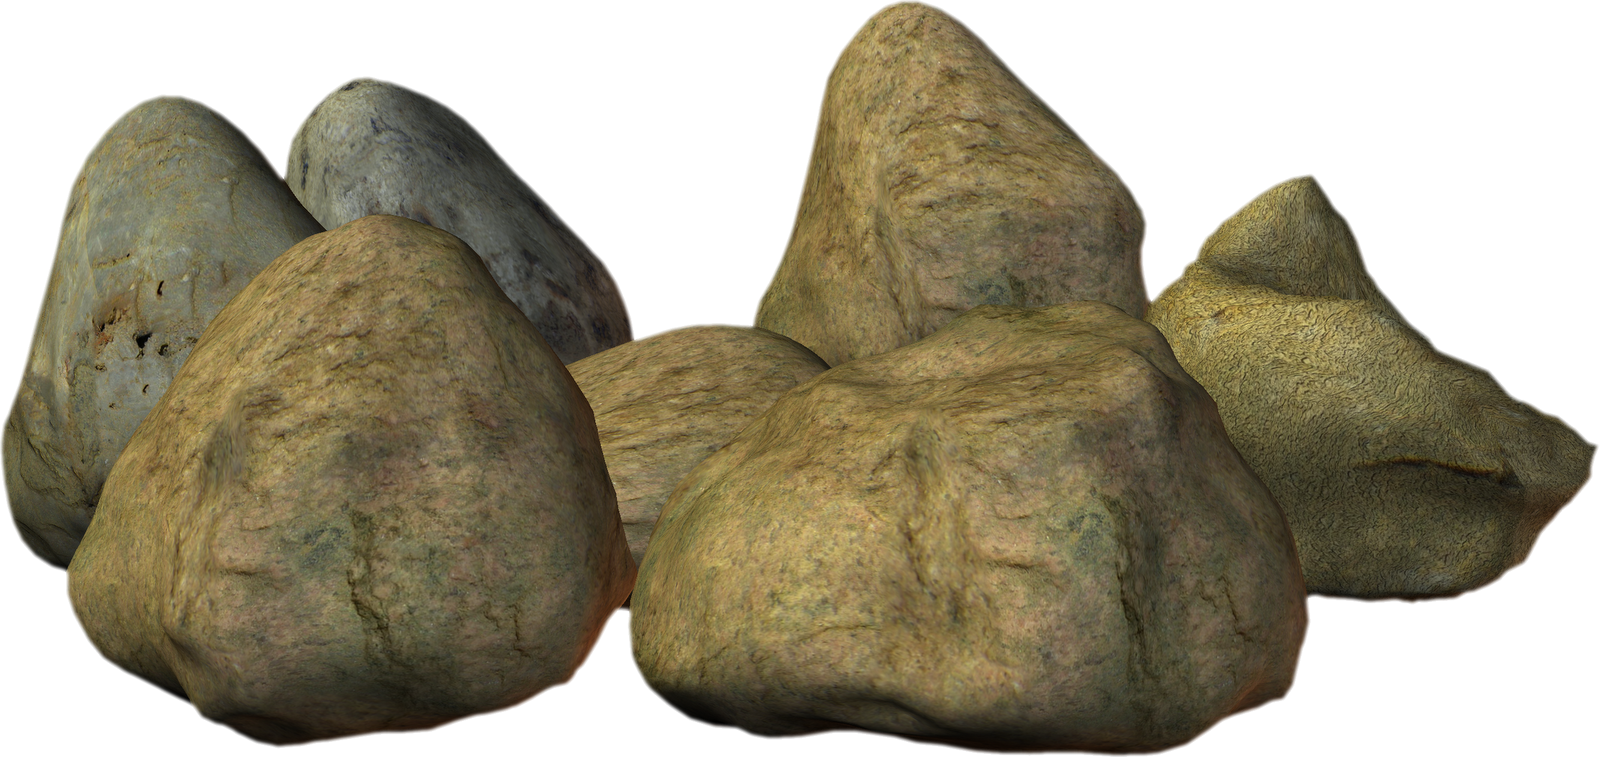 Free High Resolution graphics and clip art: rock png.